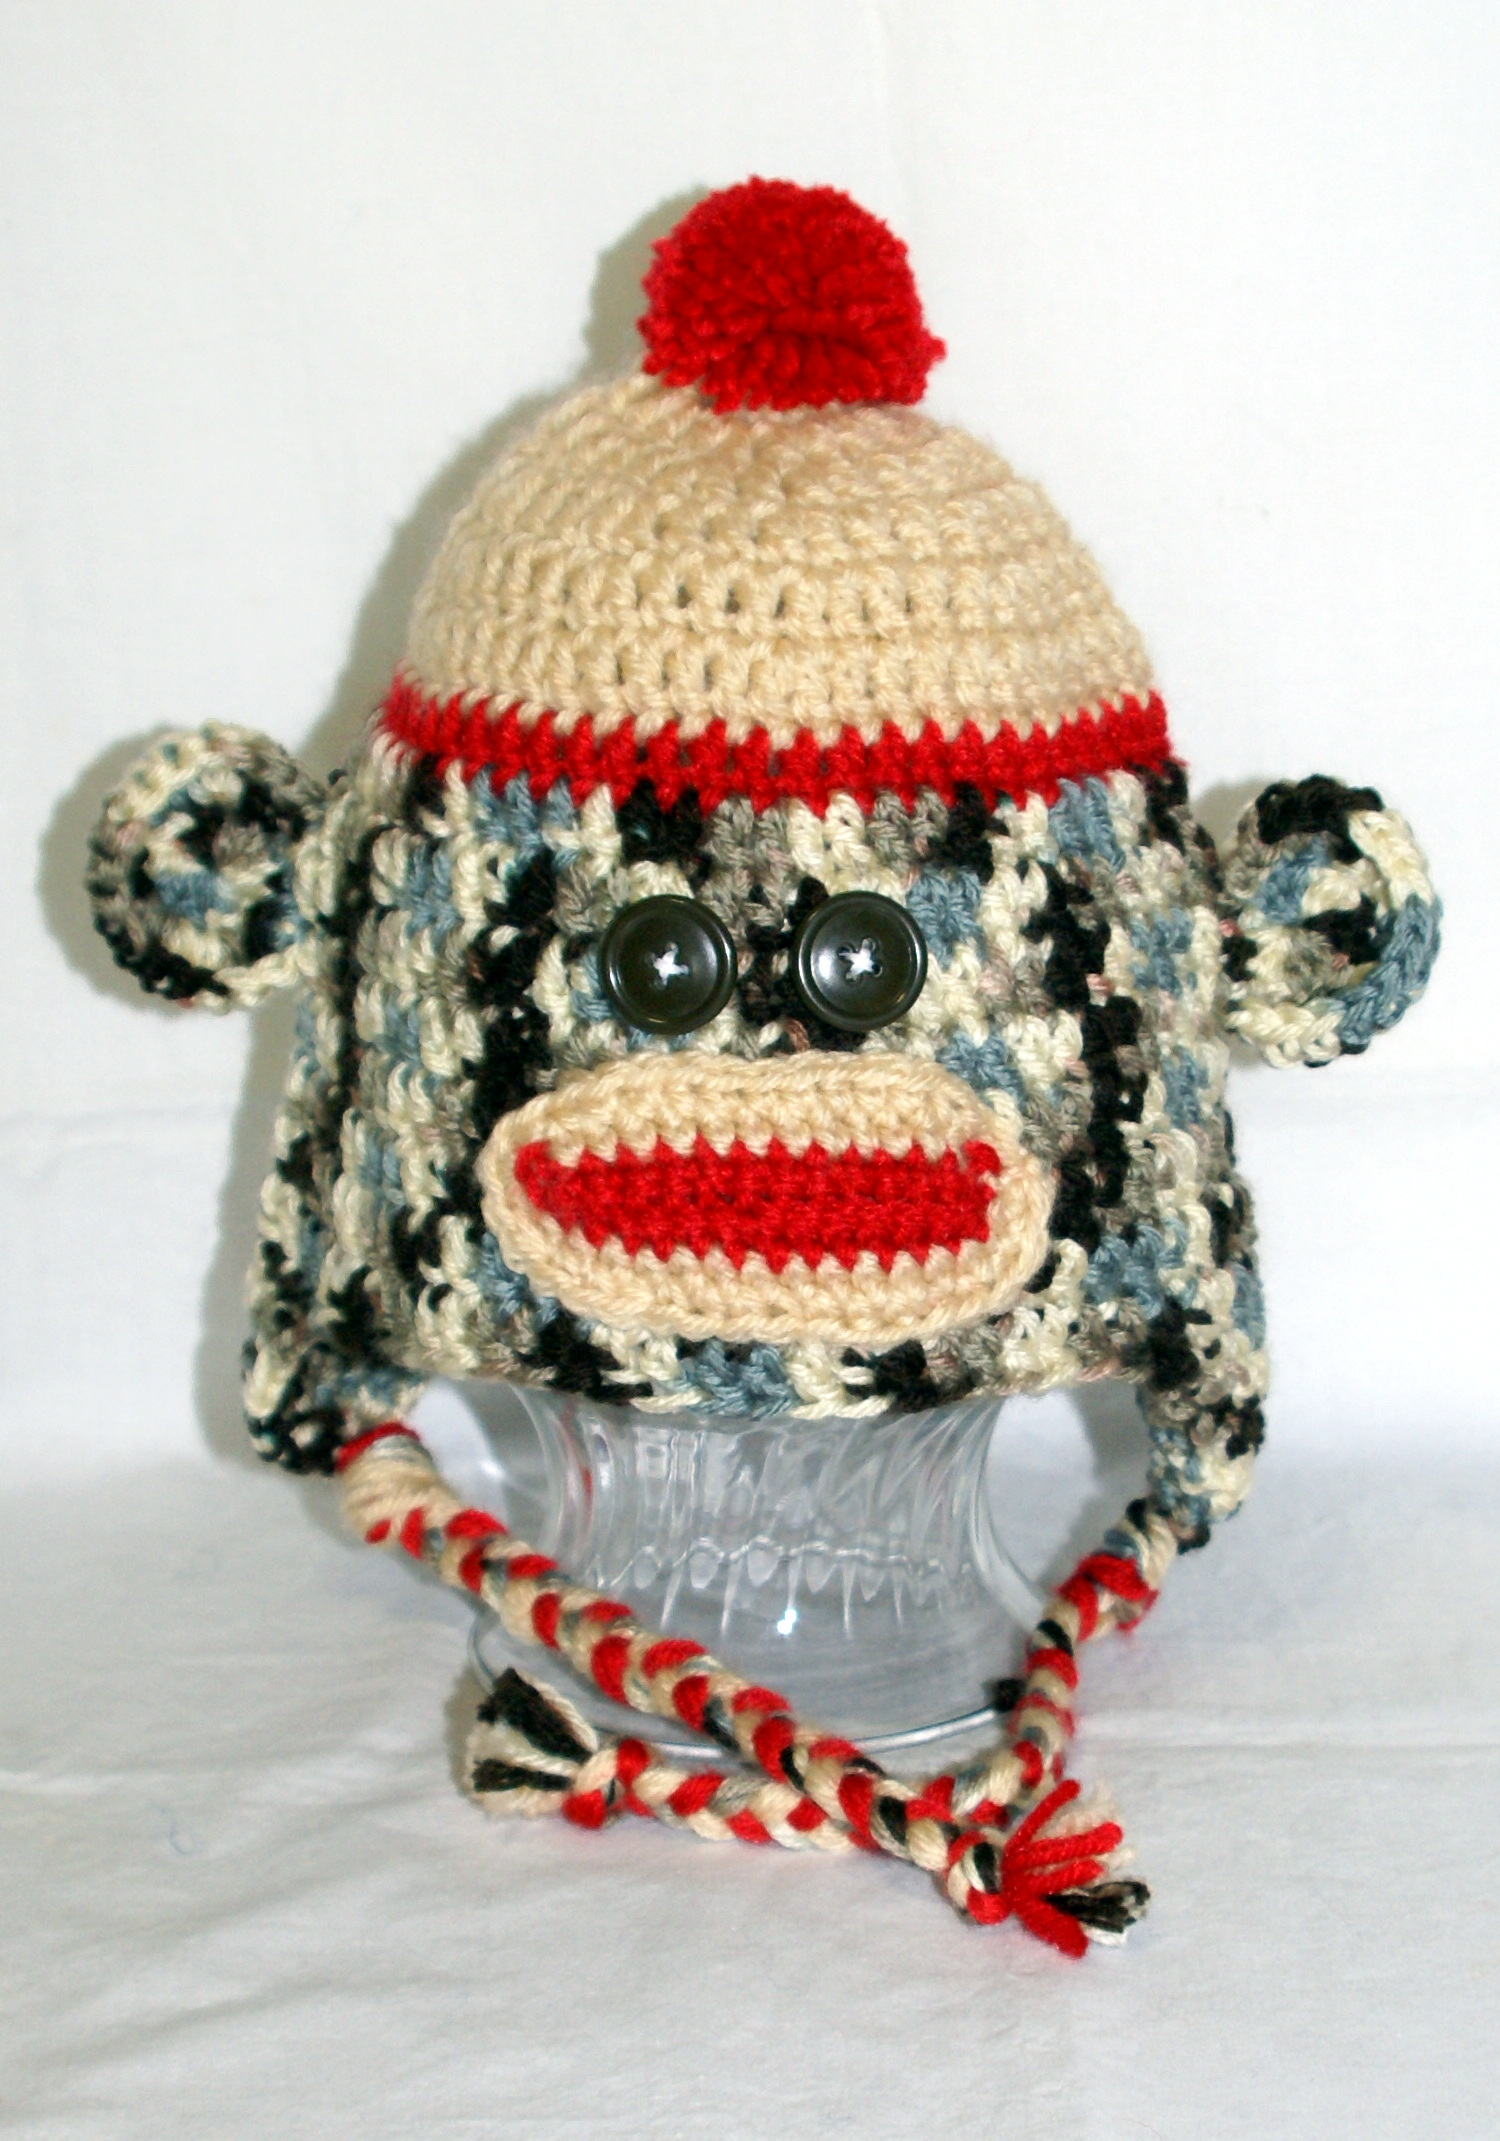 http://www.storenvy.com/products/3038199-monkey-me-hat